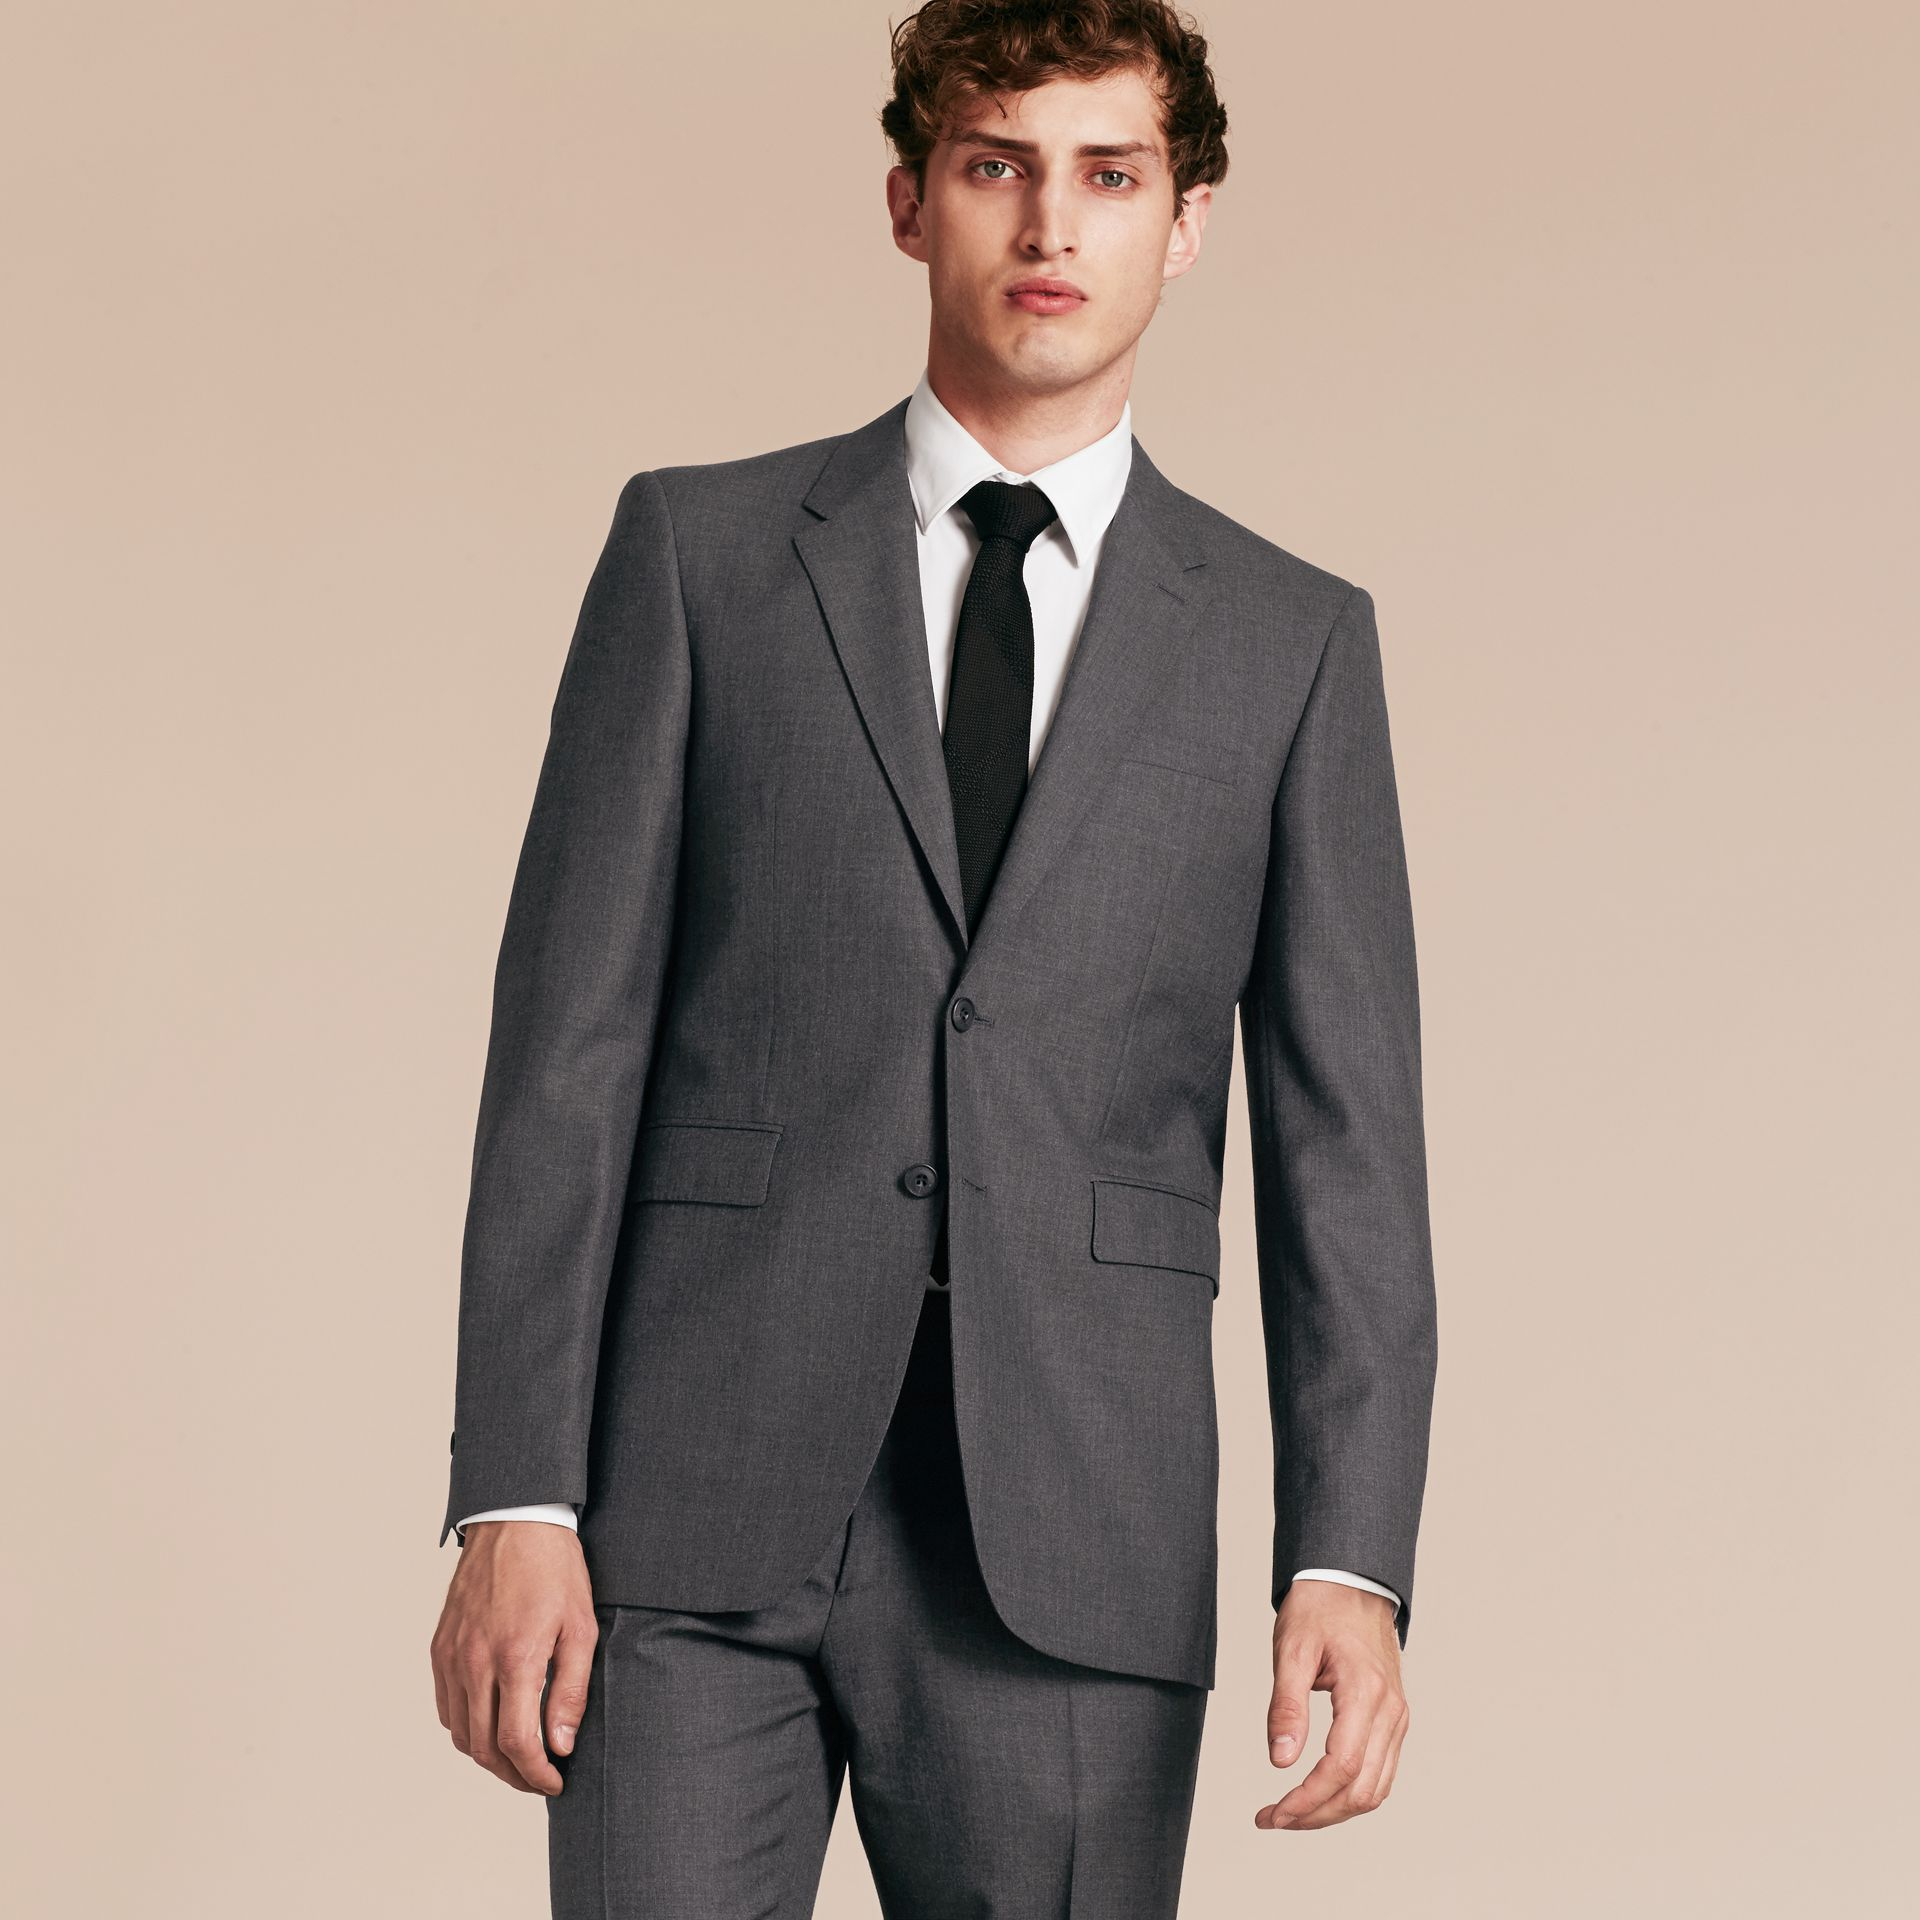 Charcoal Modern Fit Wool Part-canvas Suit Charcoal - gallery image 8